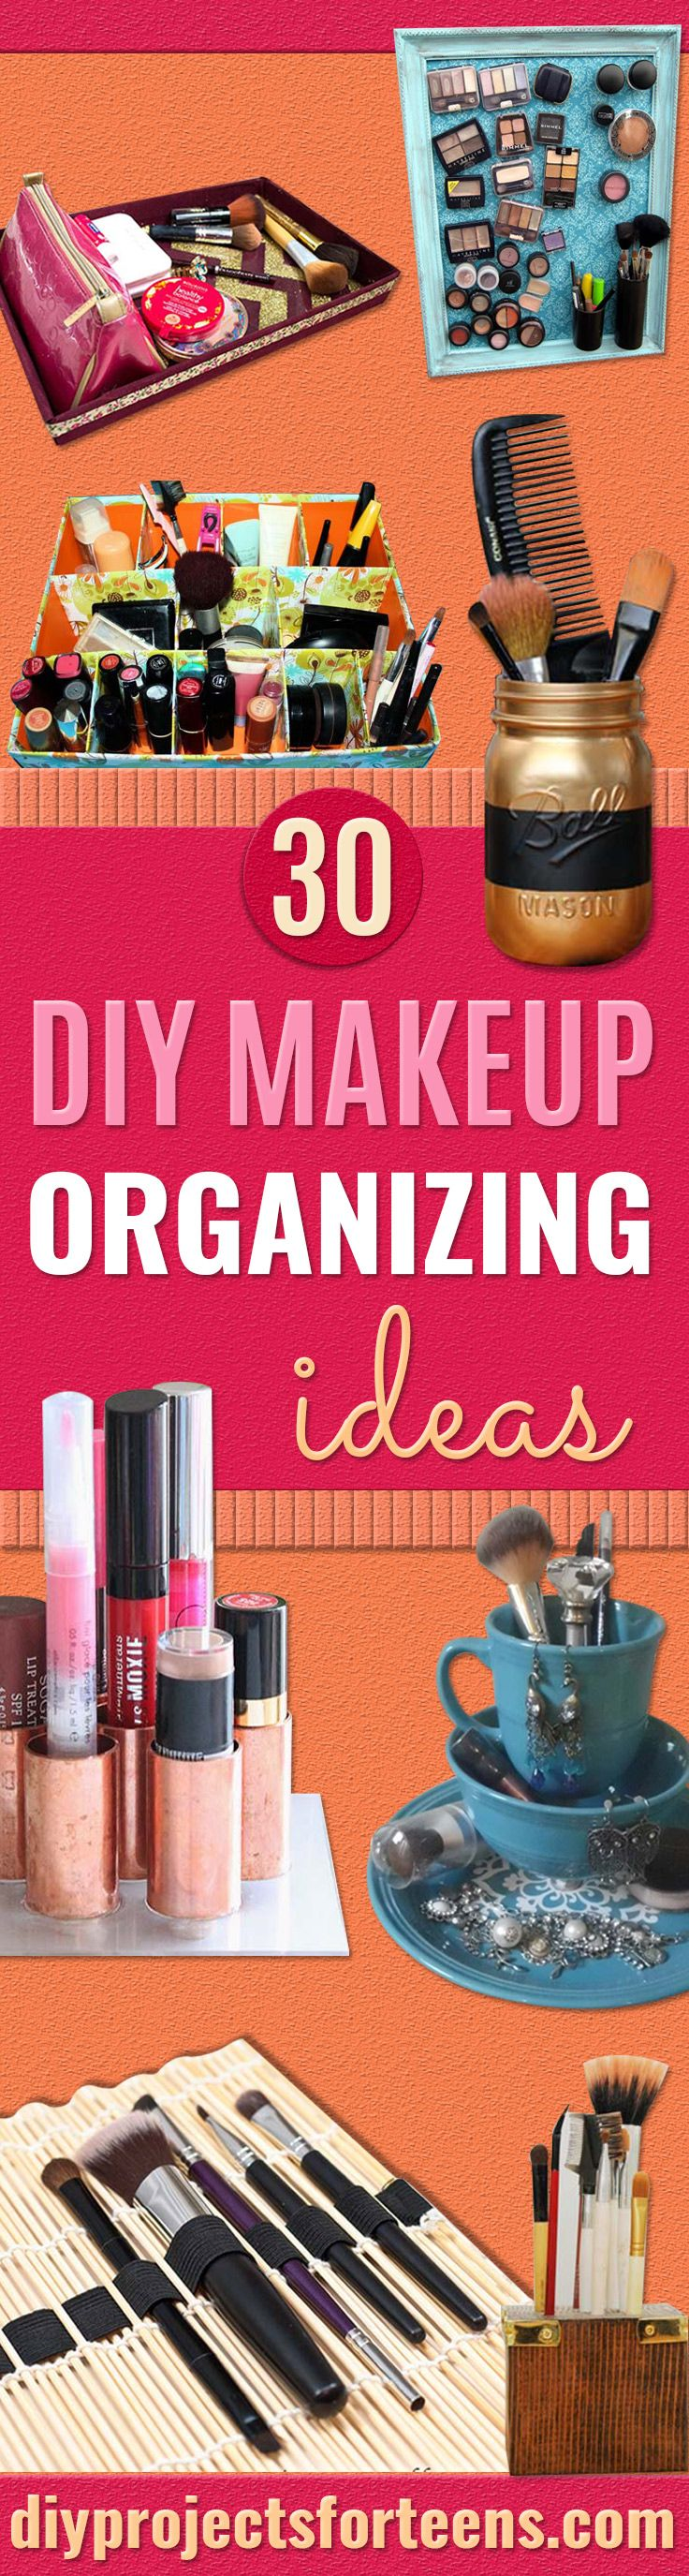 DIY Makeup Organizing Ideas   Projects For Makeup Drawer, Box, Storage,  Jars And